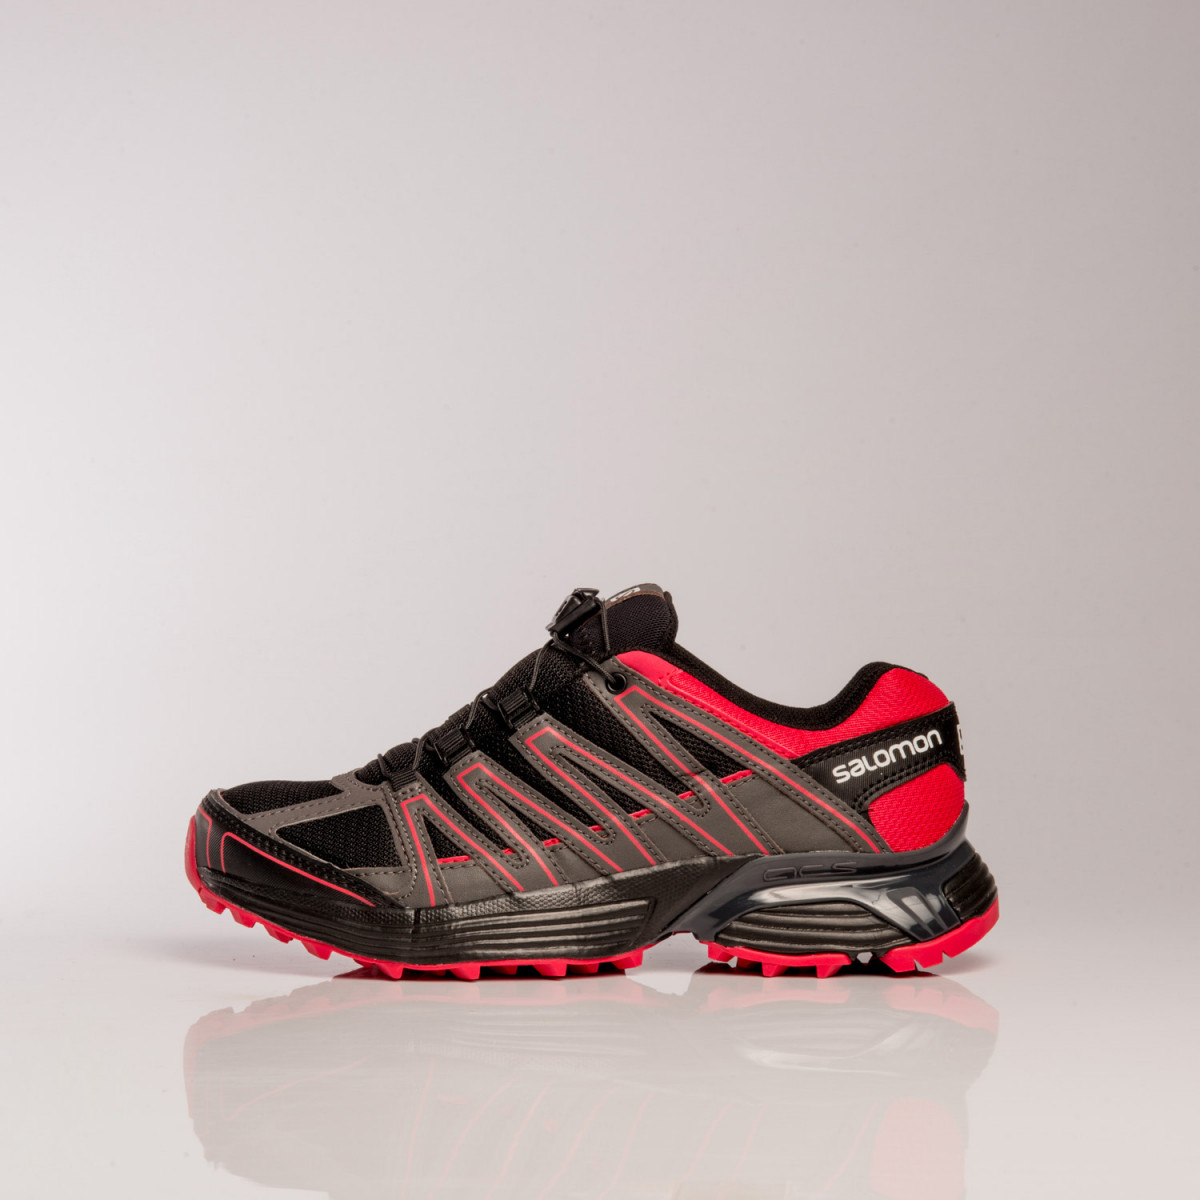 Zapatillas Salomon Xt Taurus W